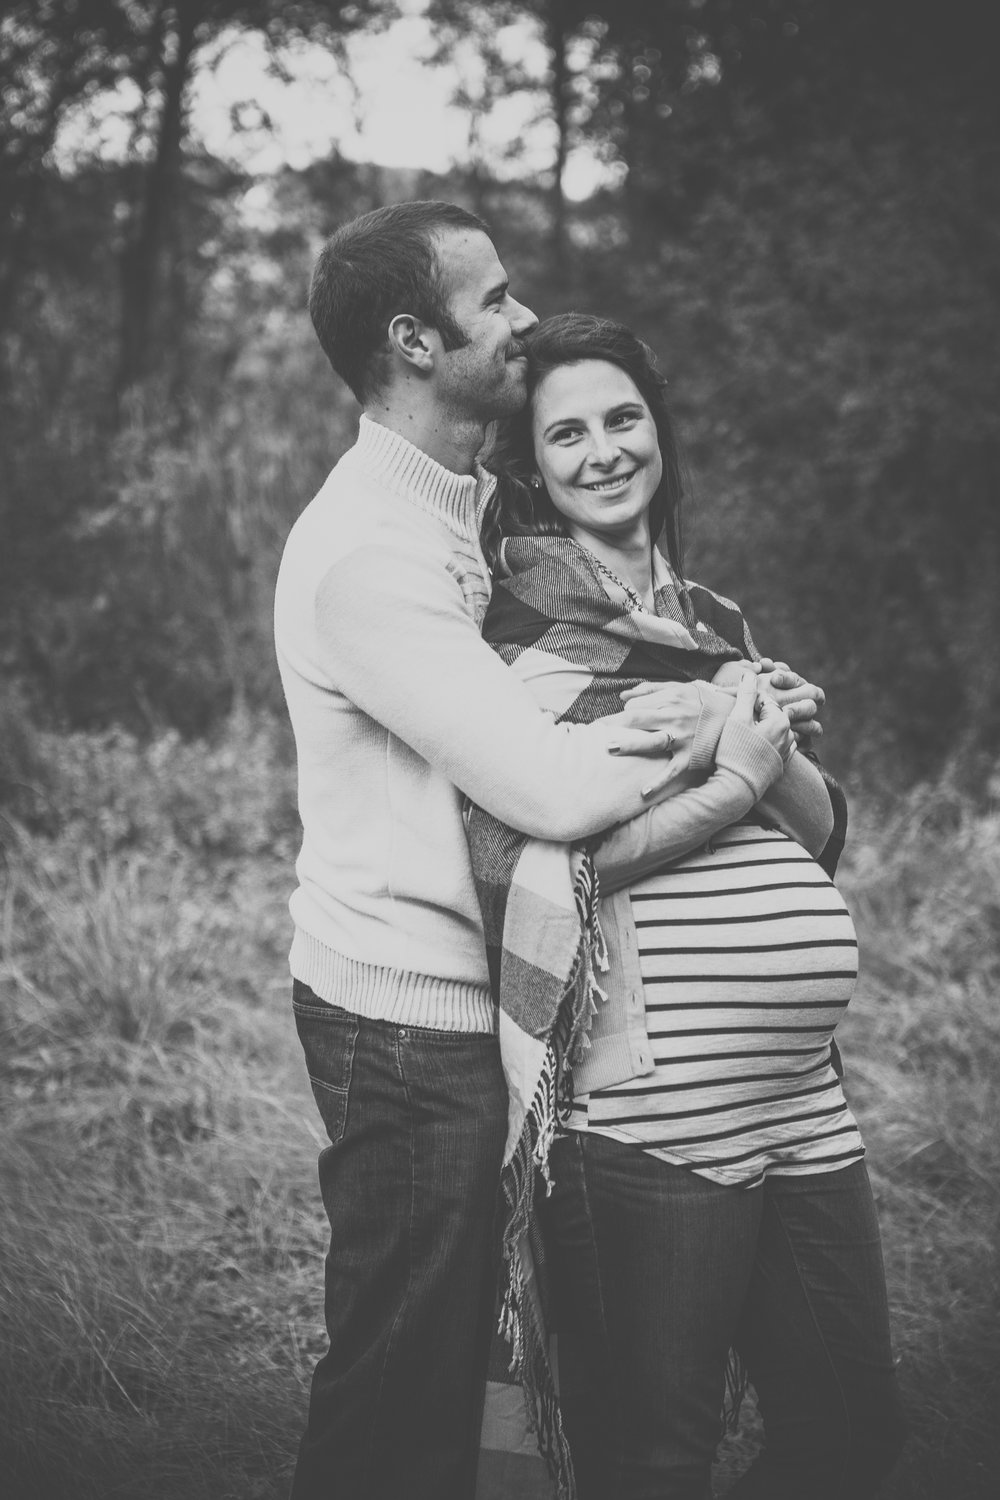 Rochester_NY_Maternity_Portrait_Photographer-5.jpg